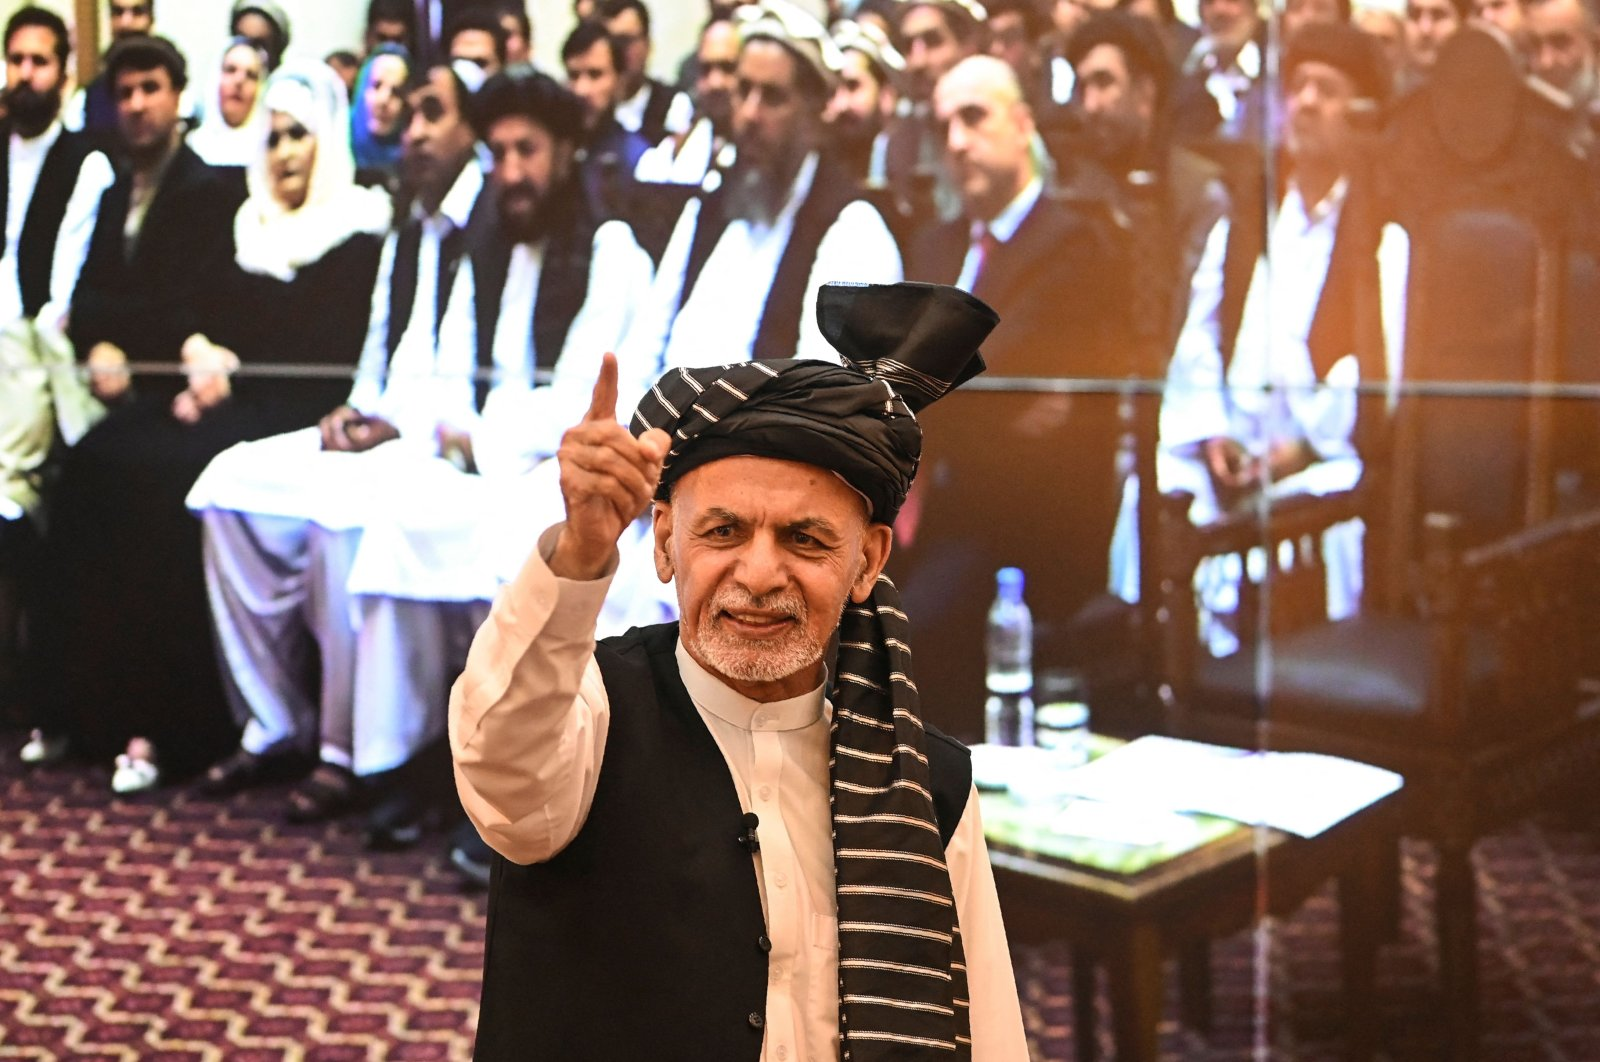 Afghanistan's President Ashraf Ghani gestures during a function at the Afghan presidential palace in Kabul, Afghanistan, Aug. 4, 2021. (AFP Photo)